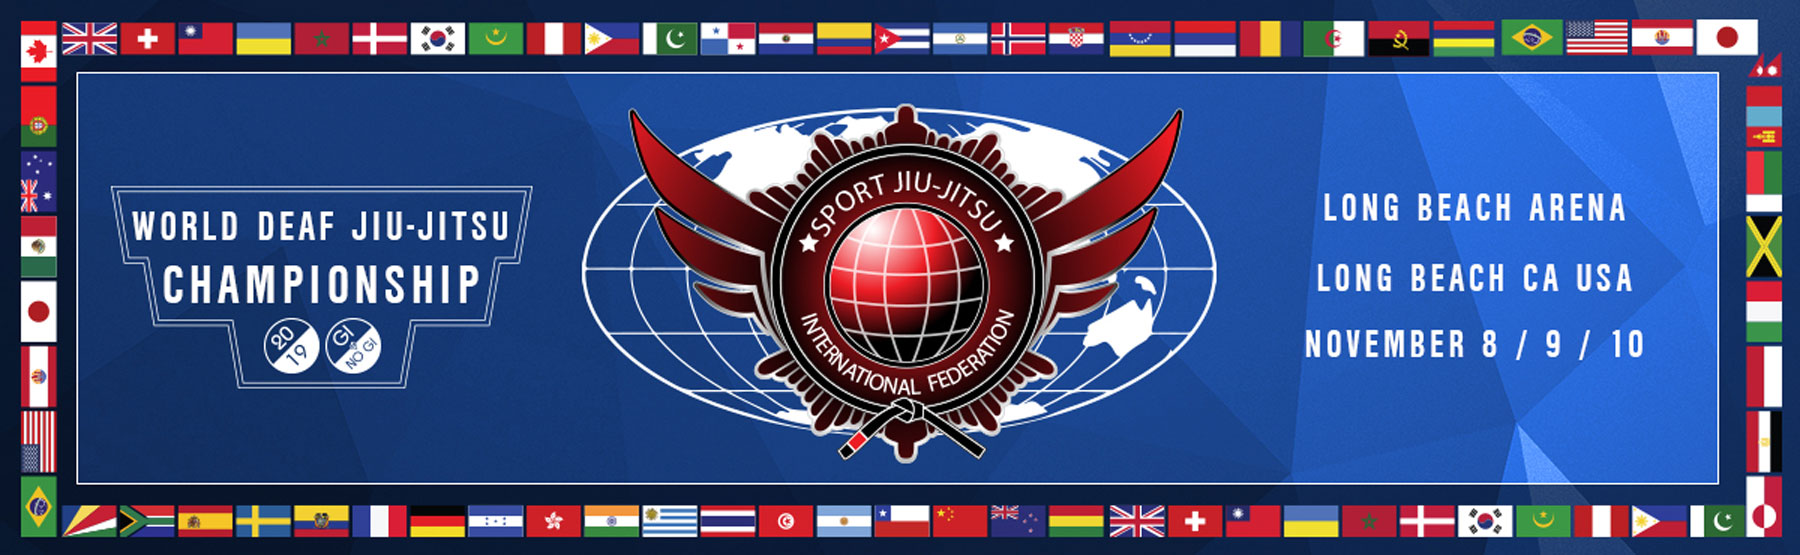 2019 World Deaf Jiu-jitsu Championship